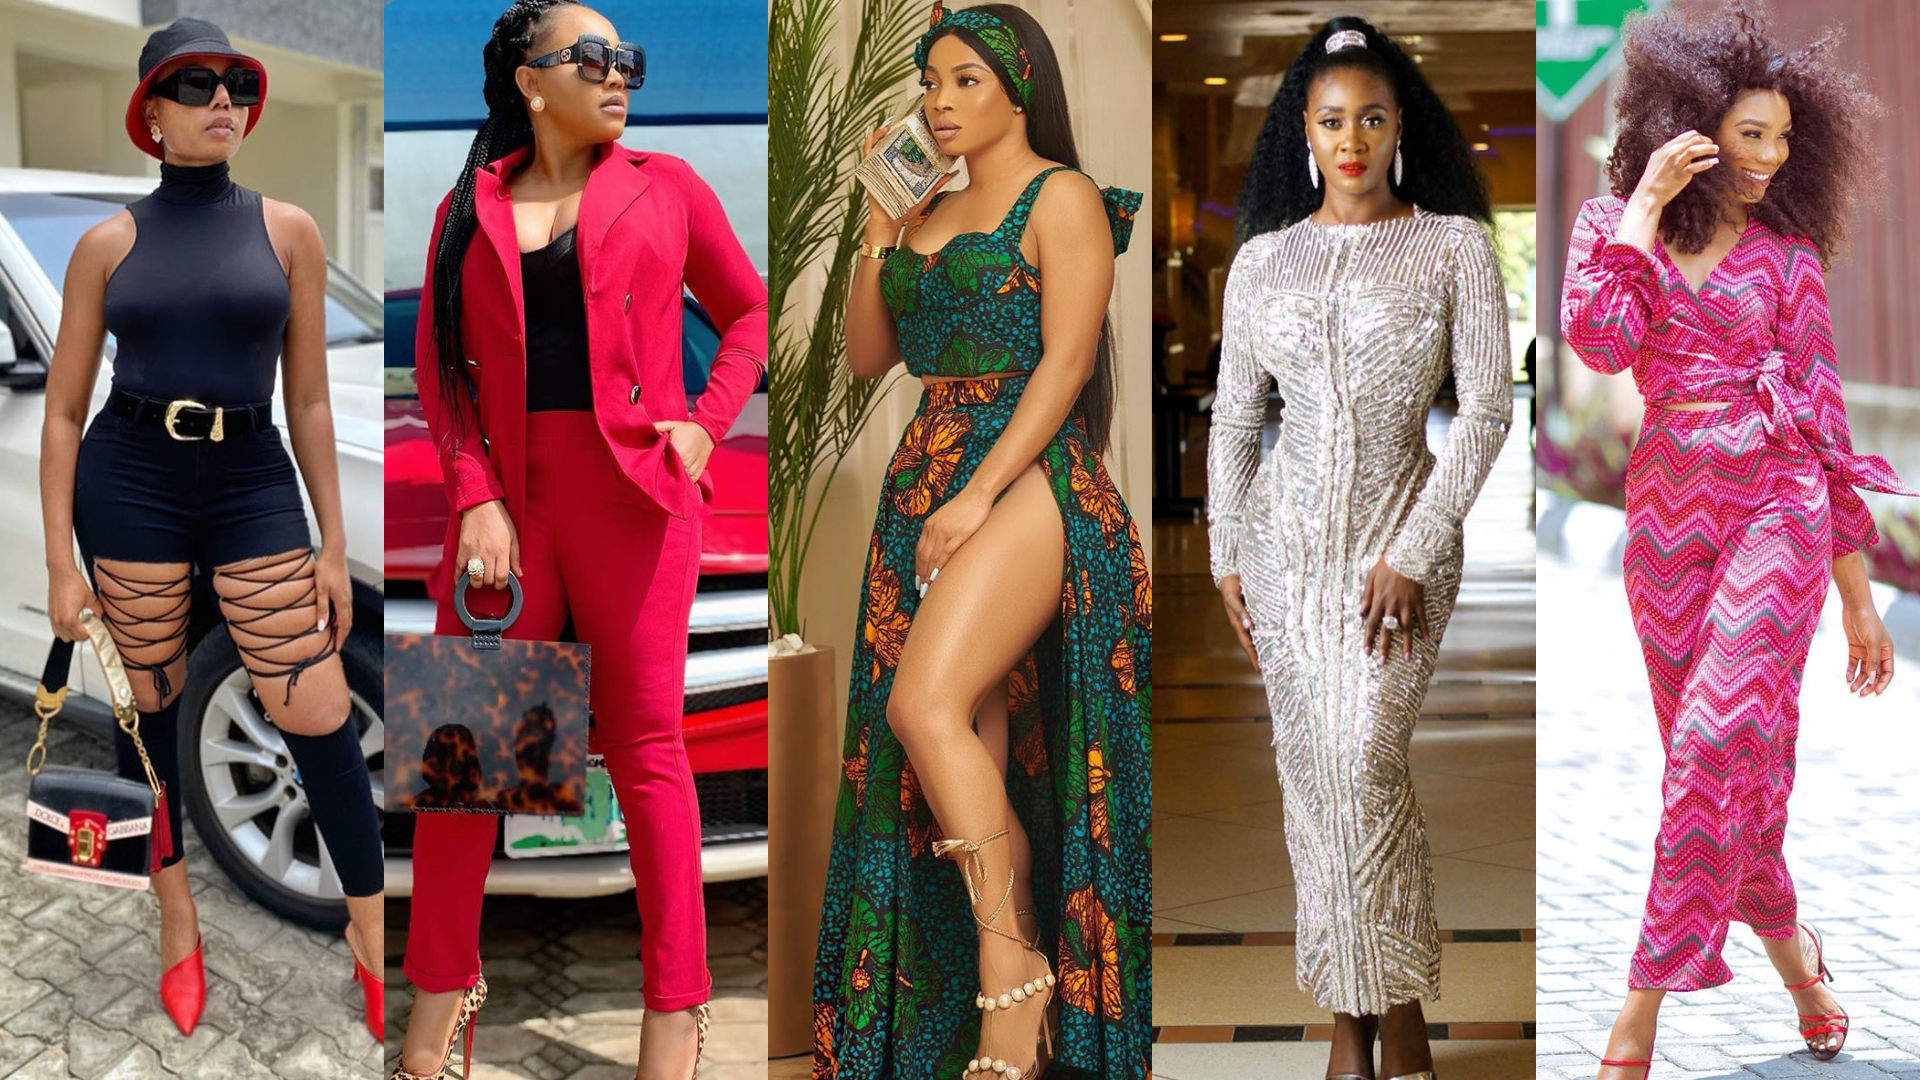 Which Of these female celebrities would you consider the mos